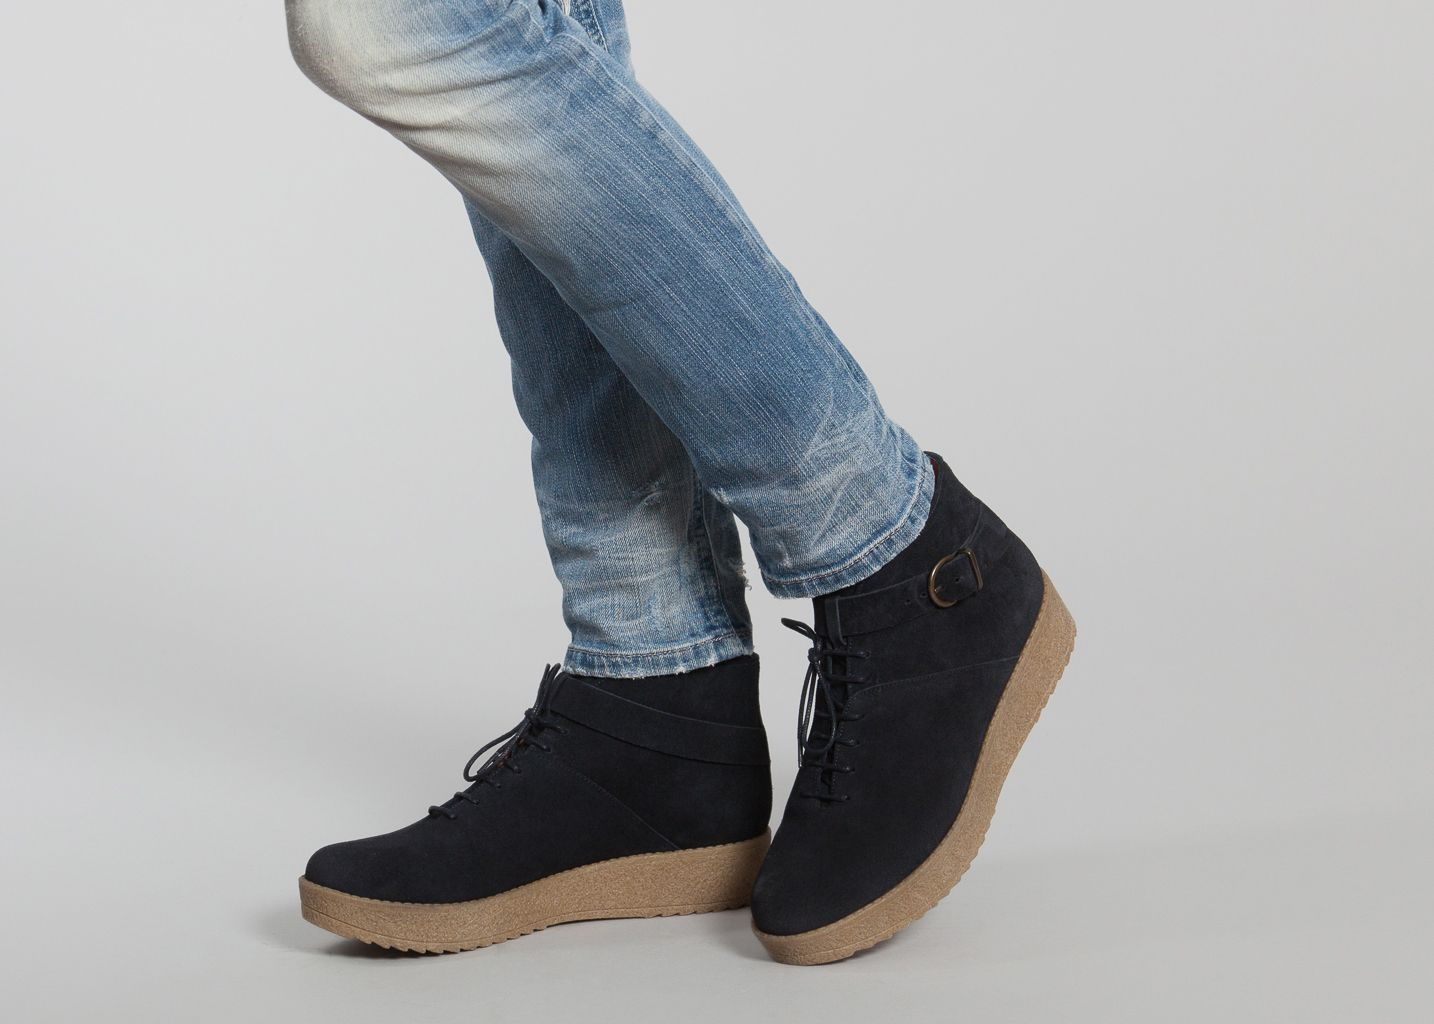 Compensees Sessun Compensees Chaussures Sessun Sessun Chaussures Compensees Chaussures Compensees Sessun Chaussures Chaussures Chaussures Sessun Compensees wPO0N8nkXZ